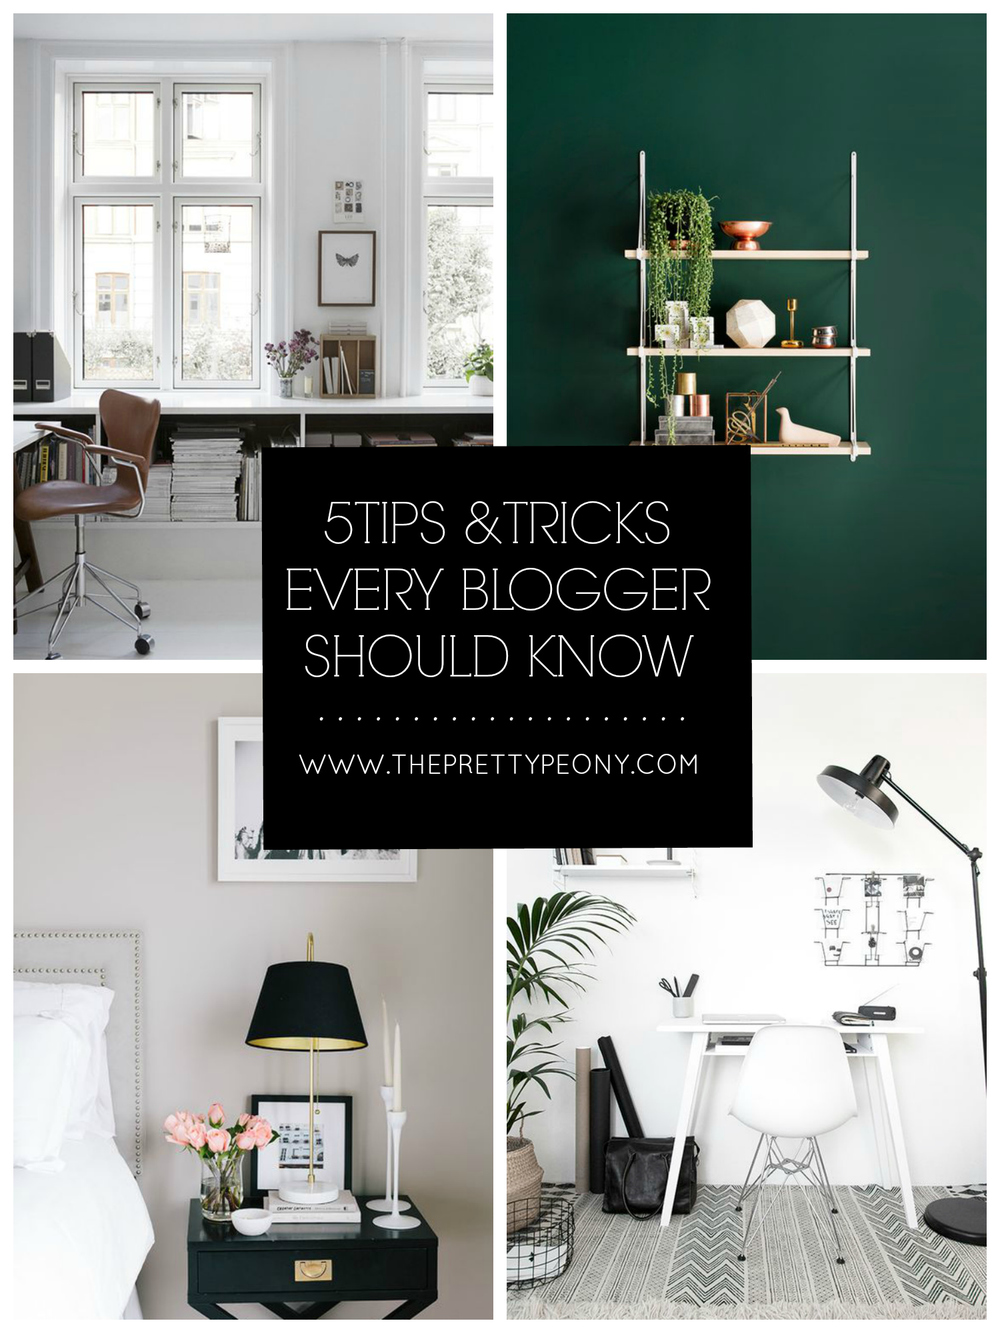 5 Tips & Tricks Every Blogger Should Know | www.theprettypeony.com